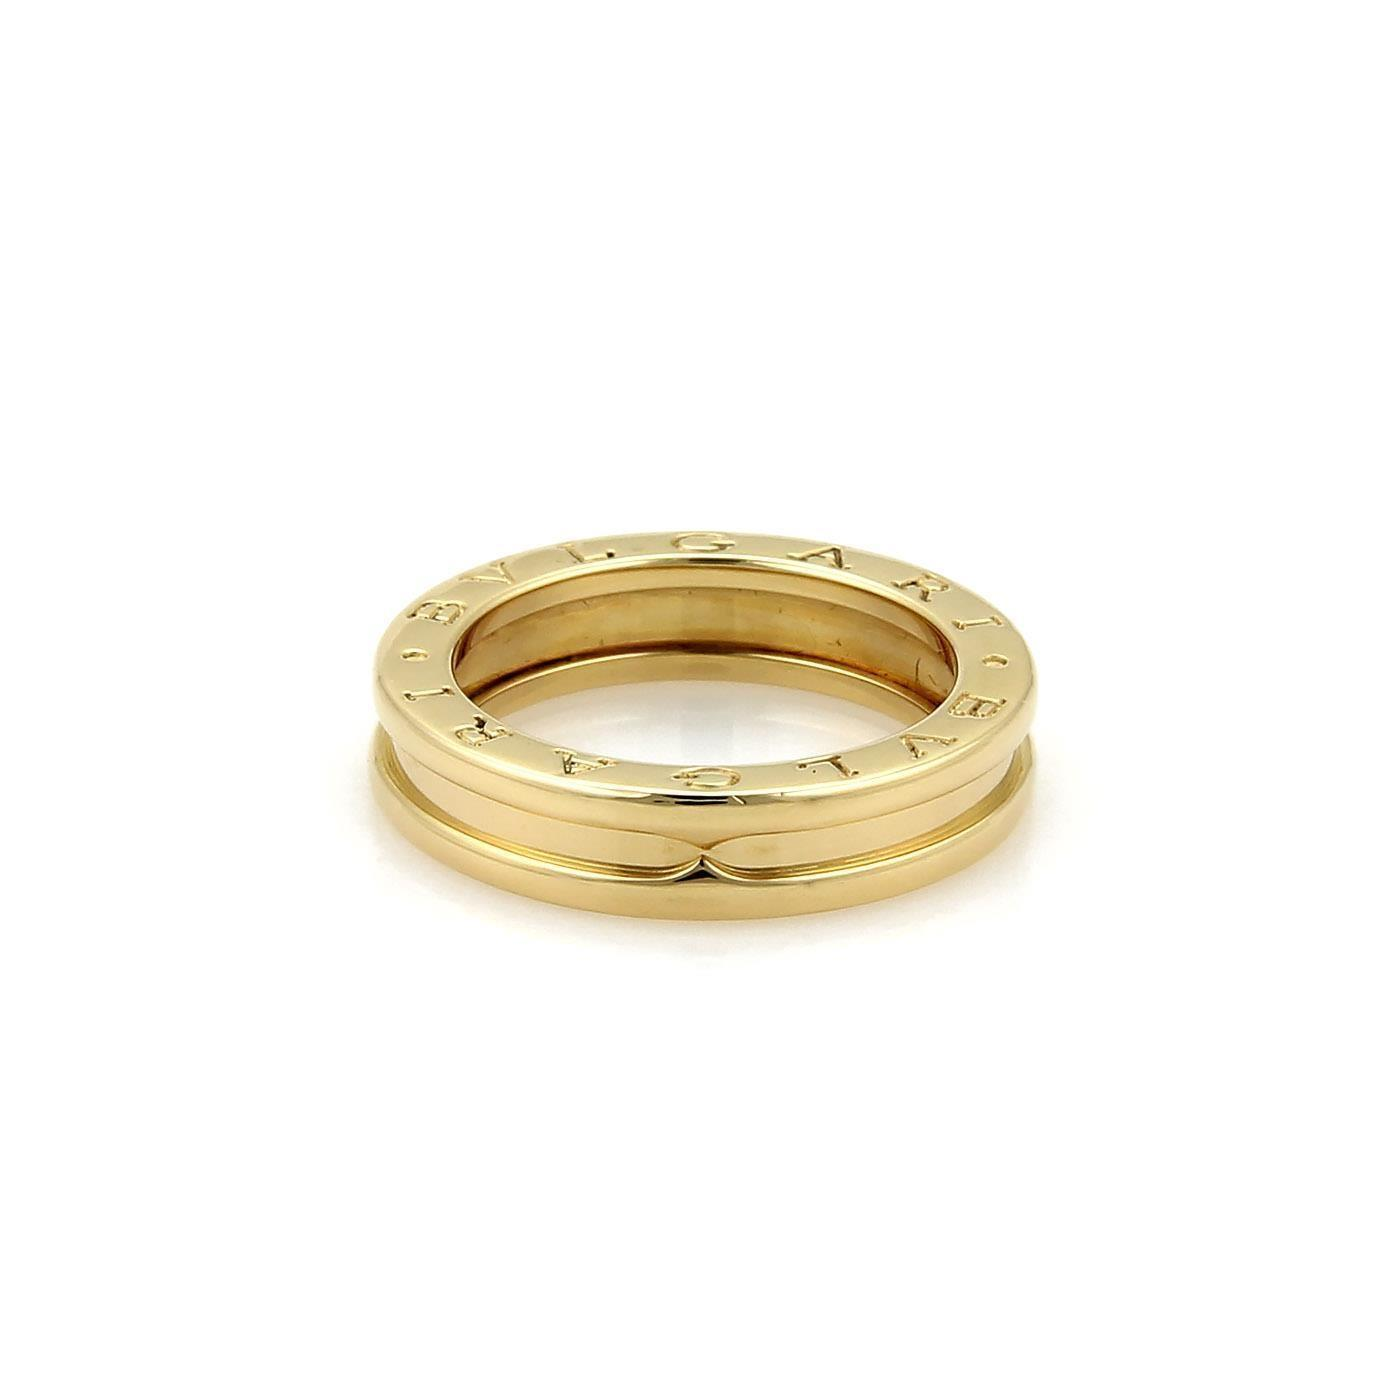 bvlgari bulgari b zero1 18k yellow gold 5mm band ring size eu 54